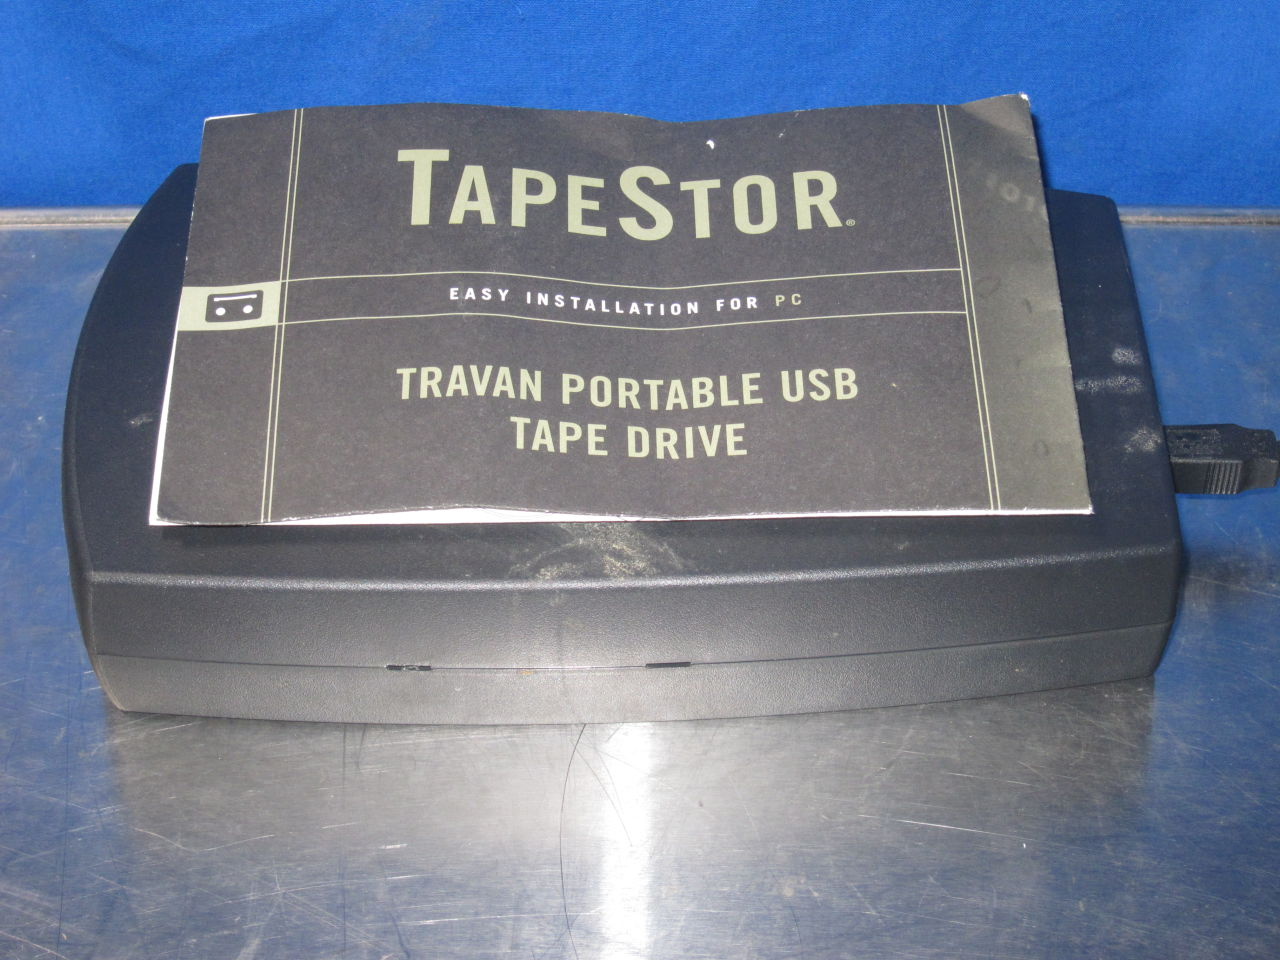 SEAGATE Tapestor – STT620102 Travan Portable USB tape Drive Hard Drive